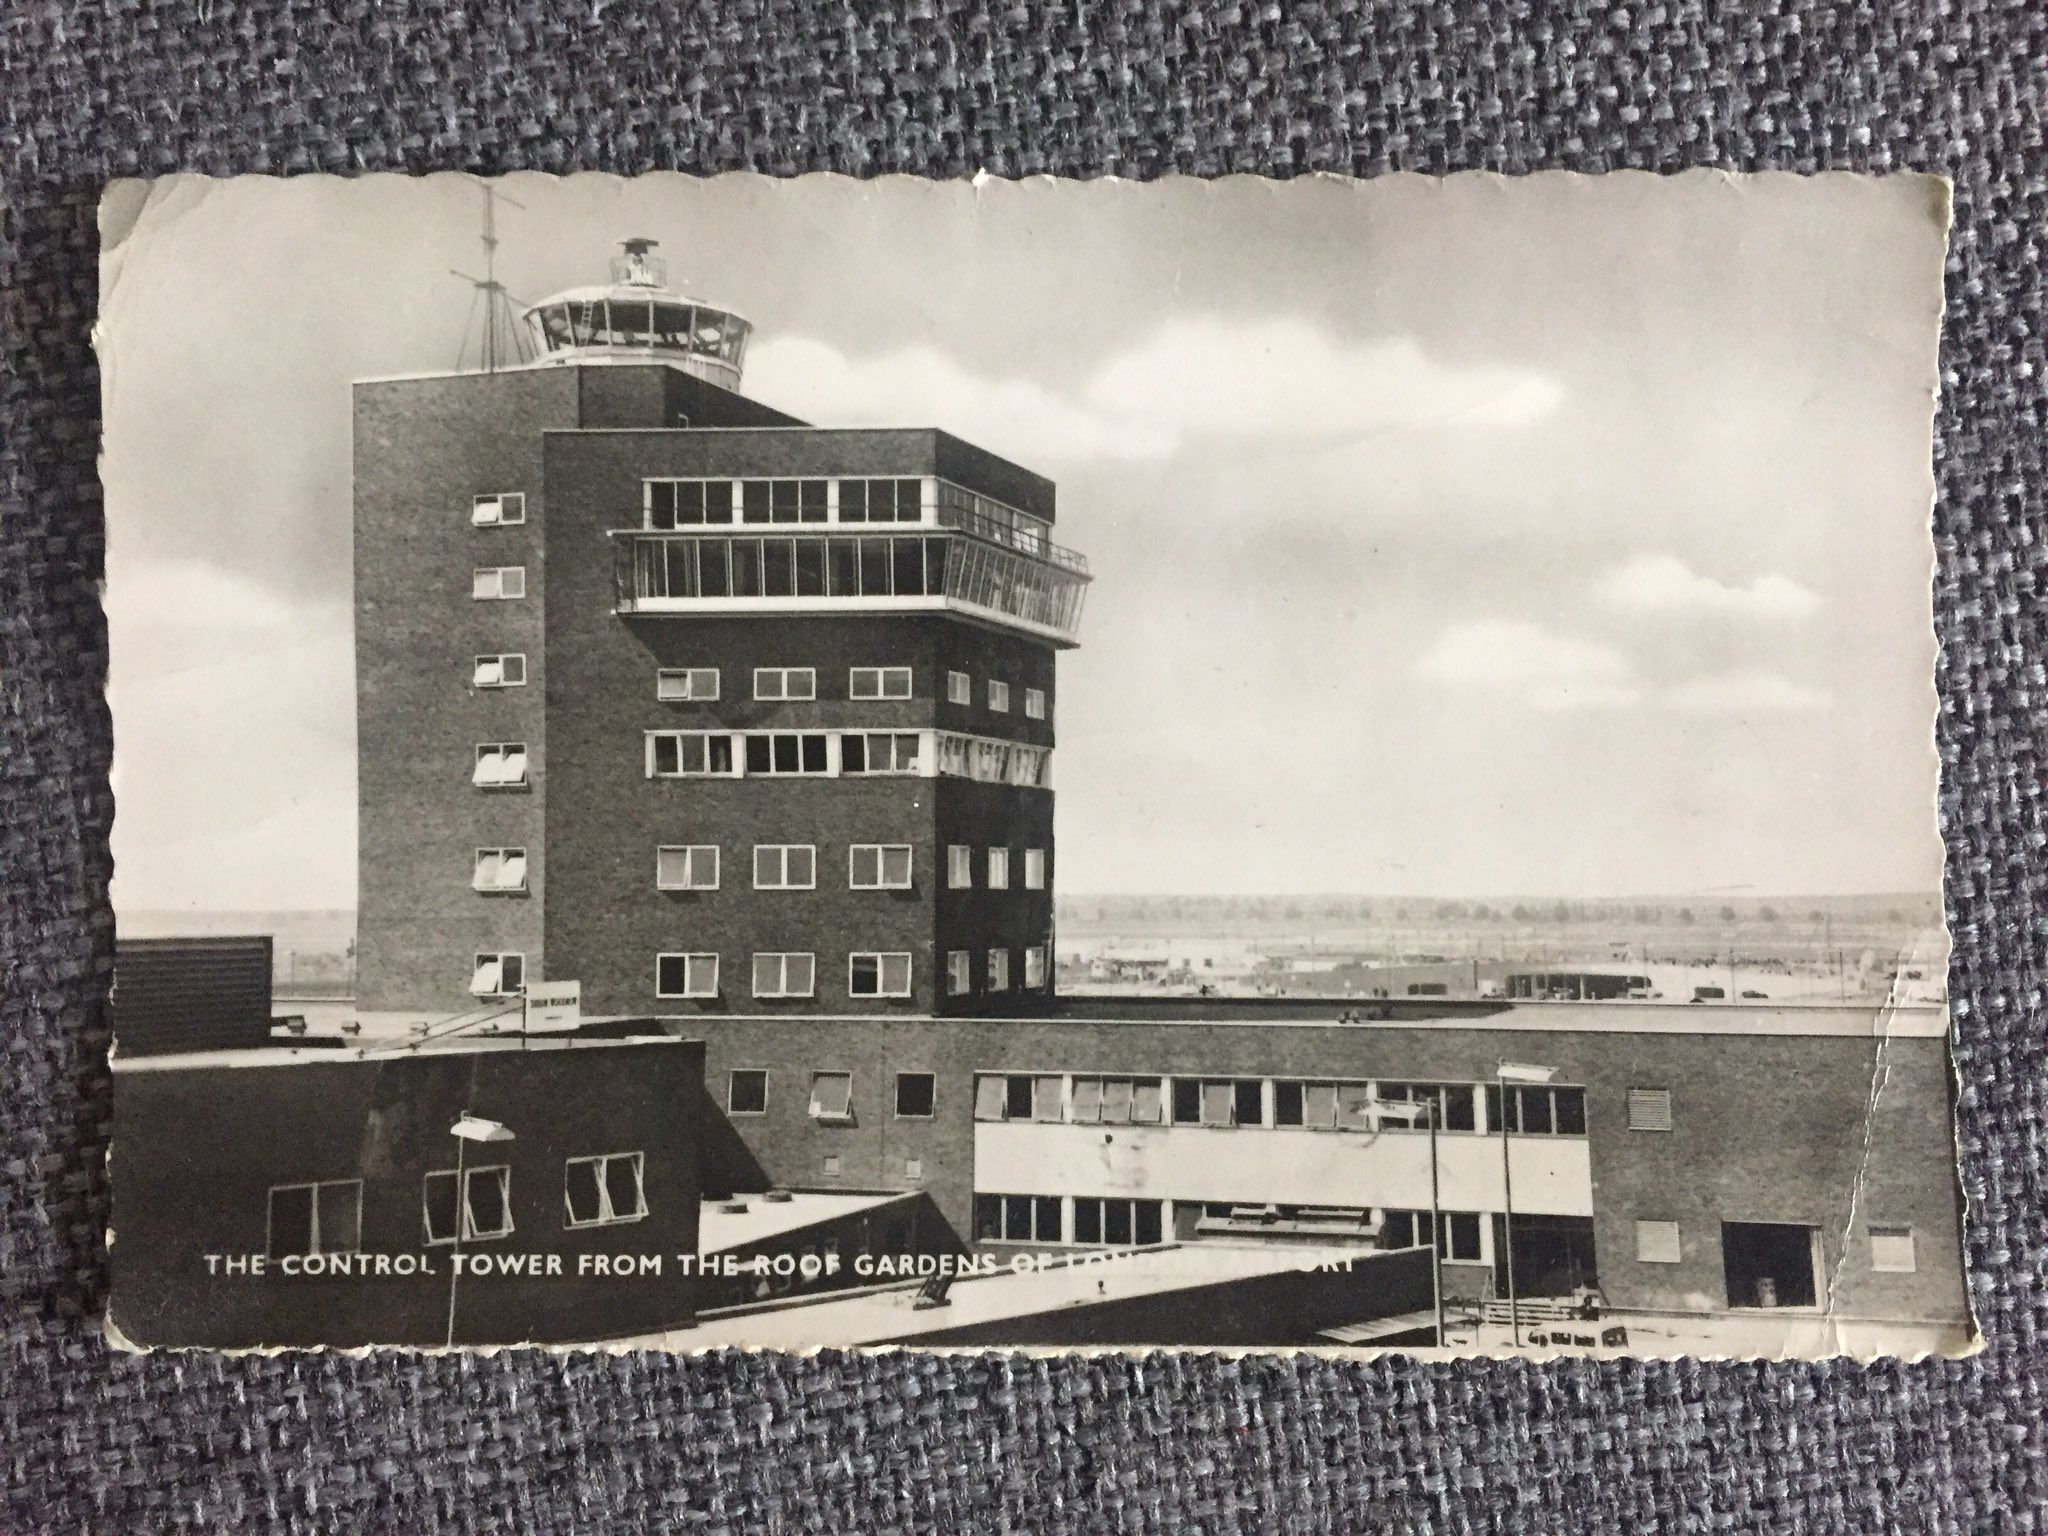 London Heathrow airport, 1960s, Air traffic control tower